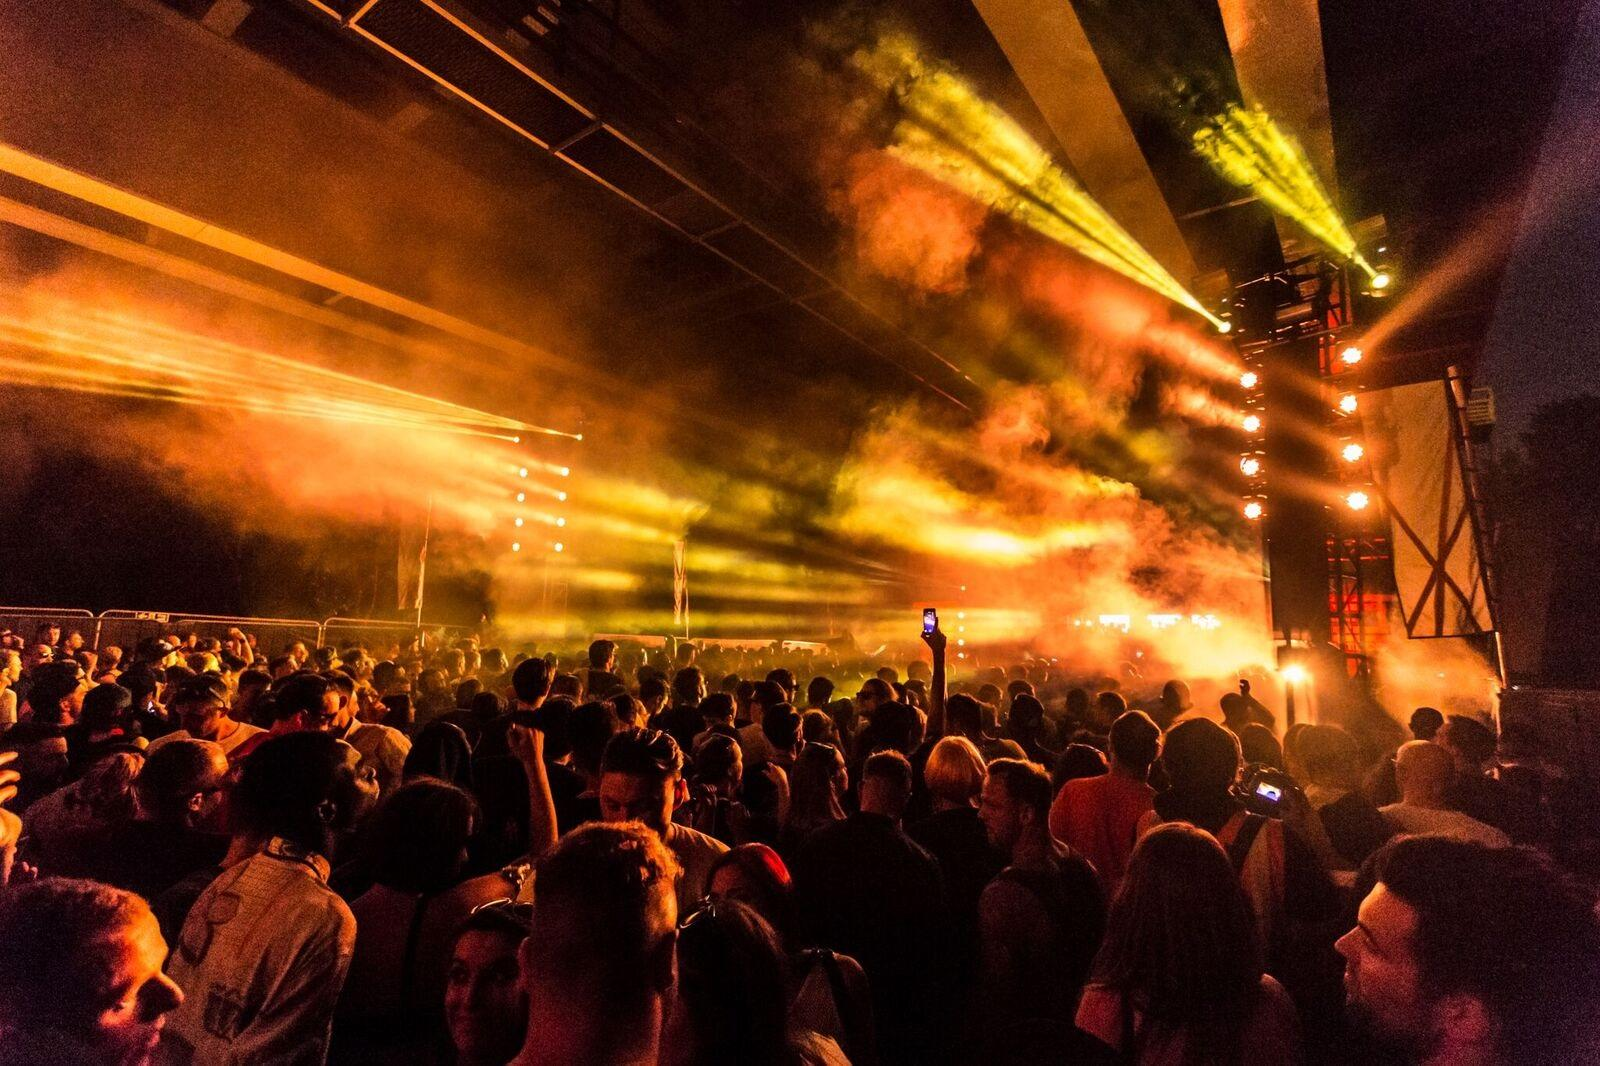 Junction 2 Expands Across 2 days